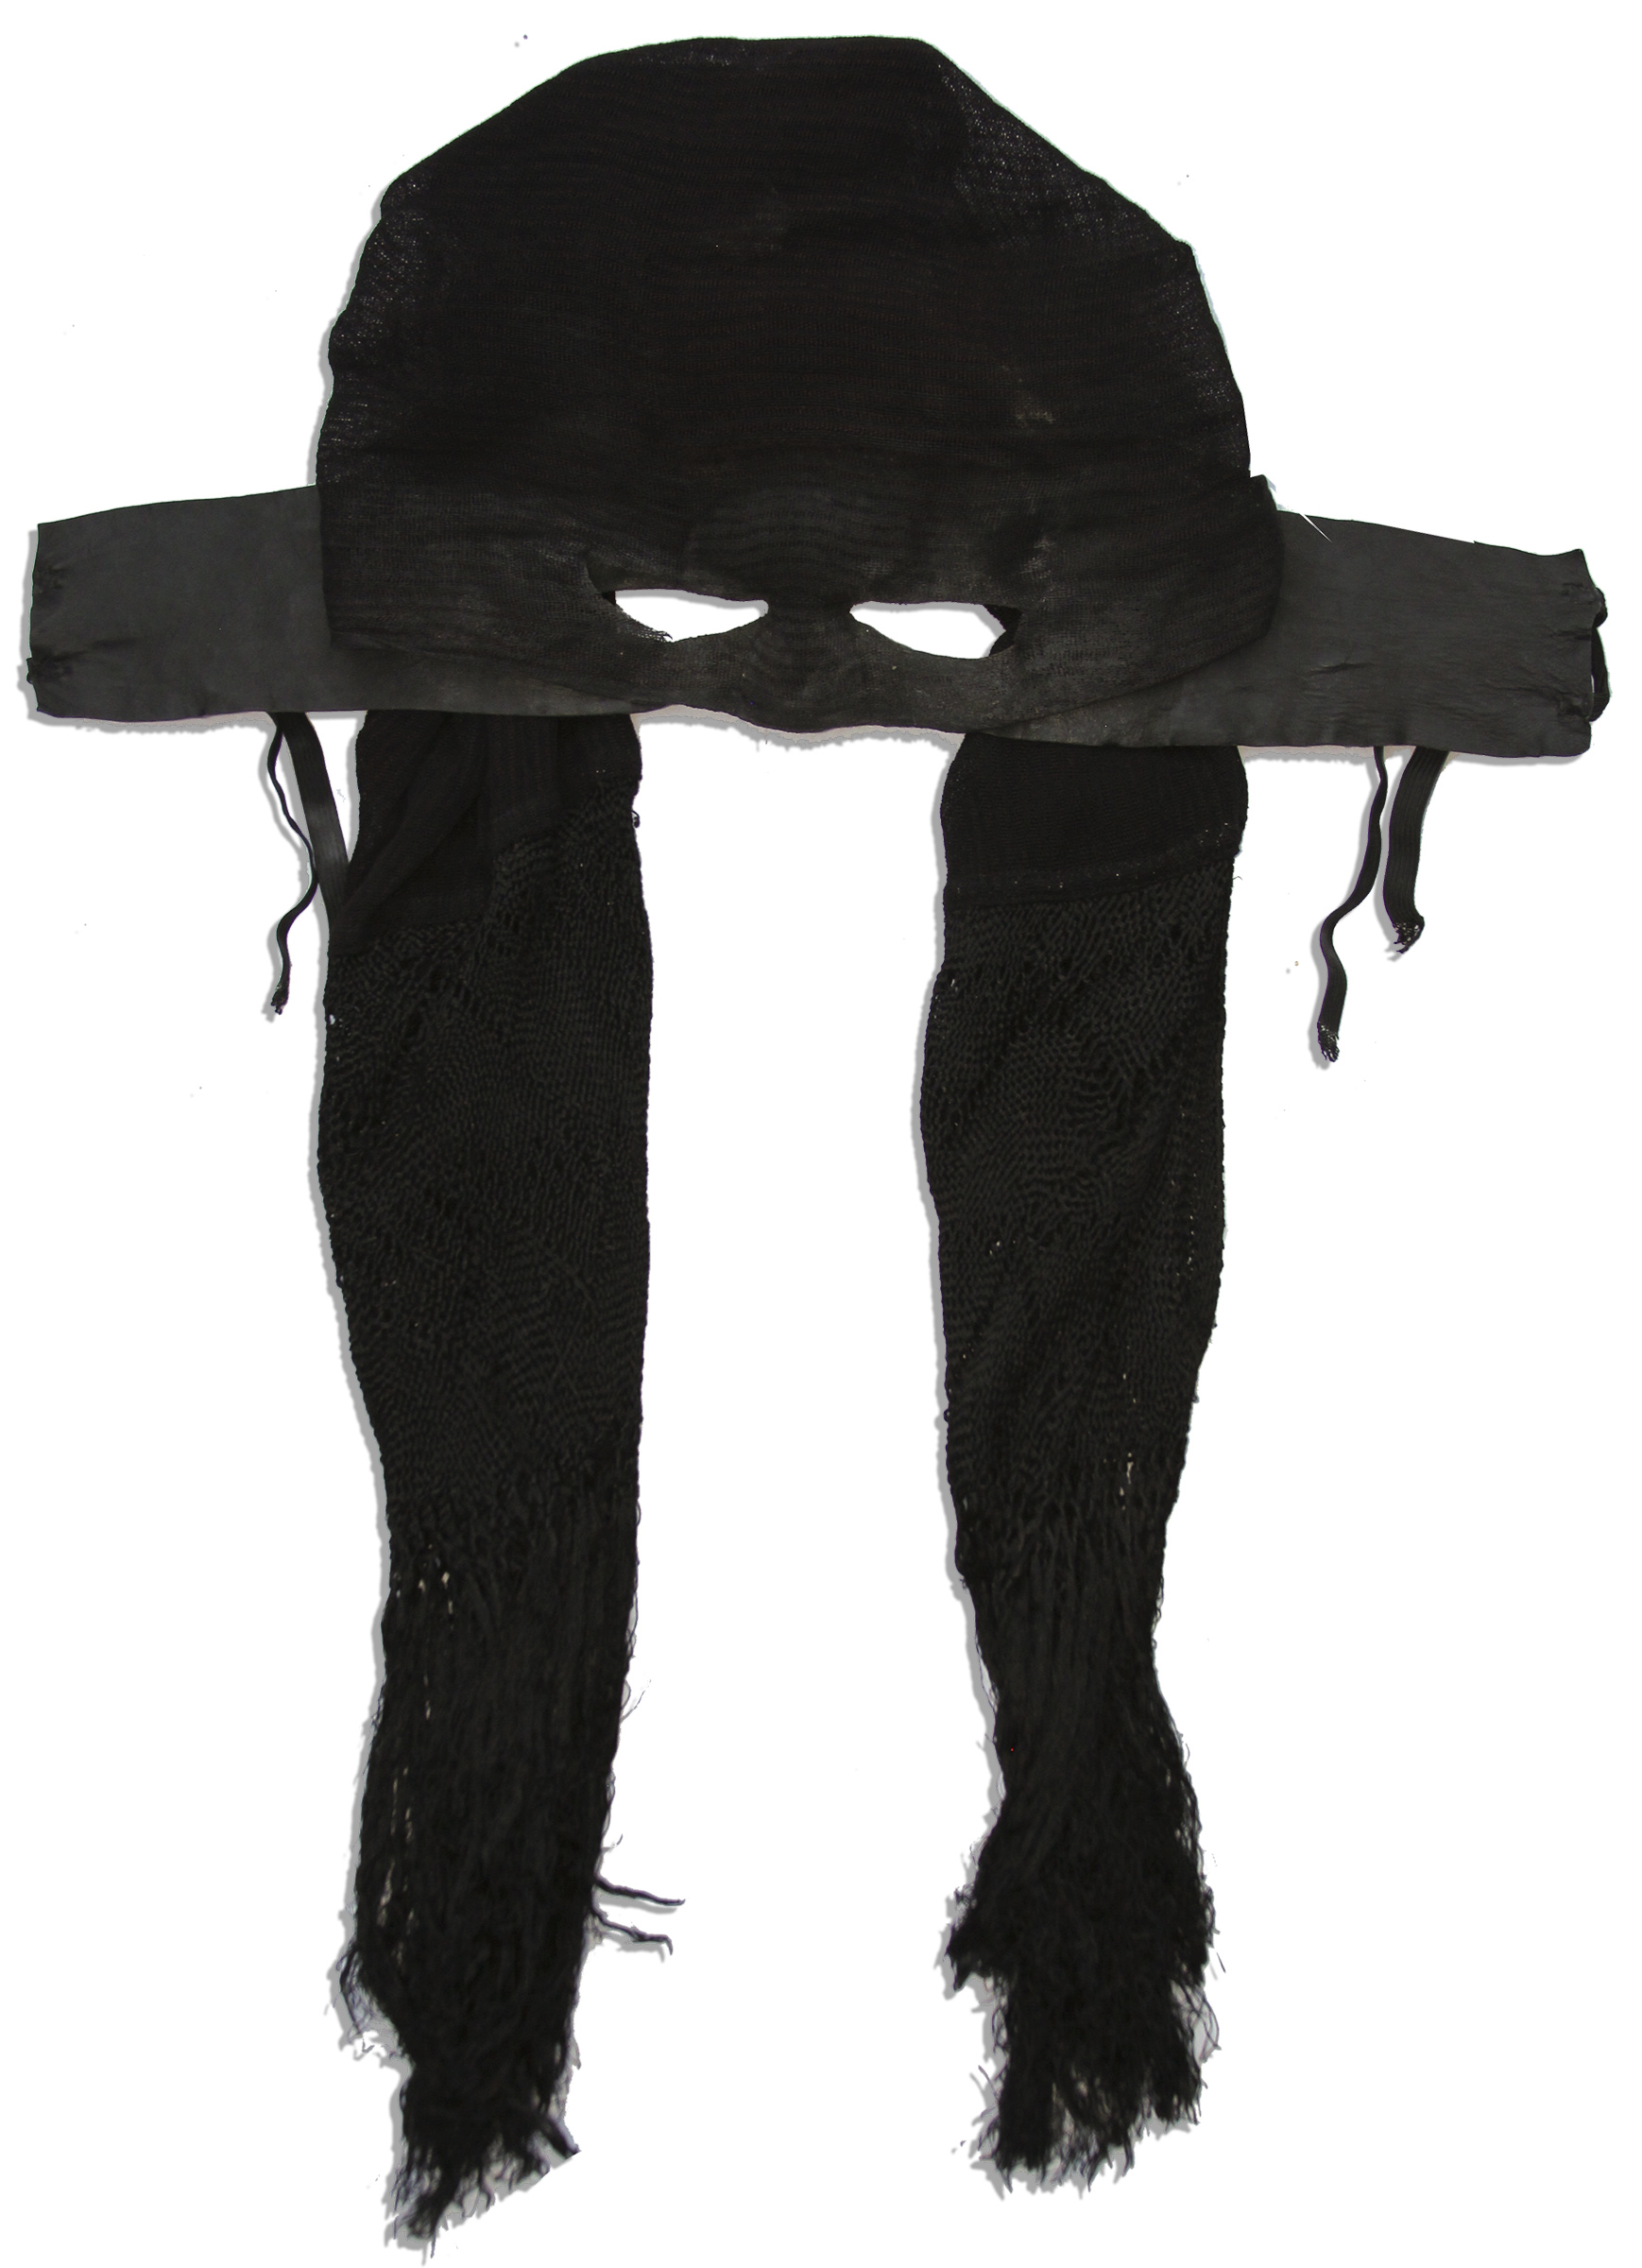 Zorro Mask Costume 104